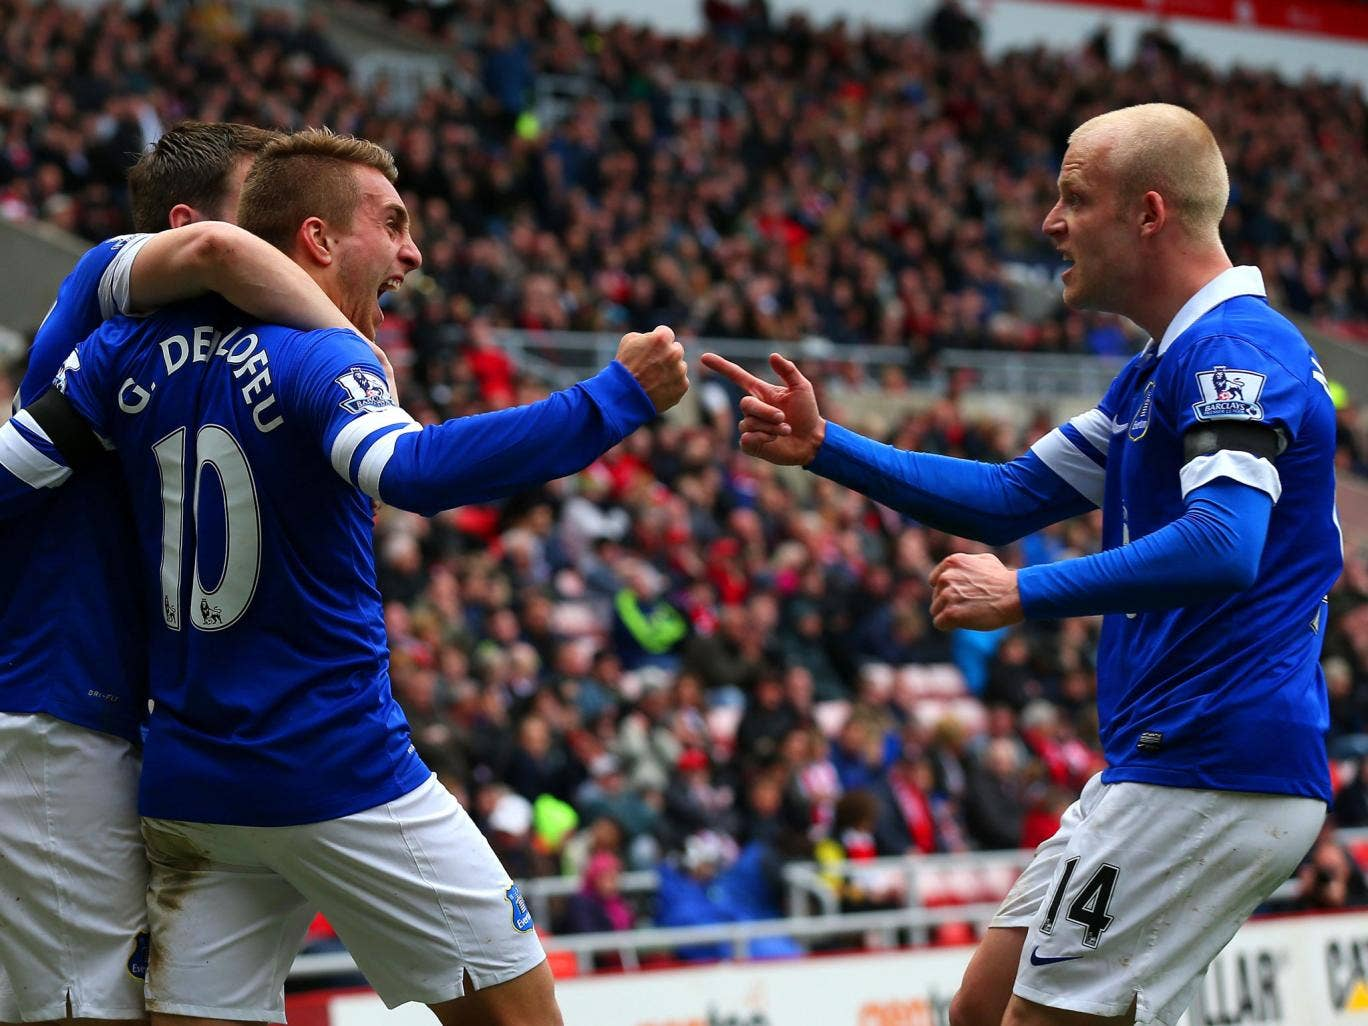 Seamus Coleman, Gerard Deulofeu and Steven Naismith of Everton celebrate after Wes Brown of Sunderland scores an own goal